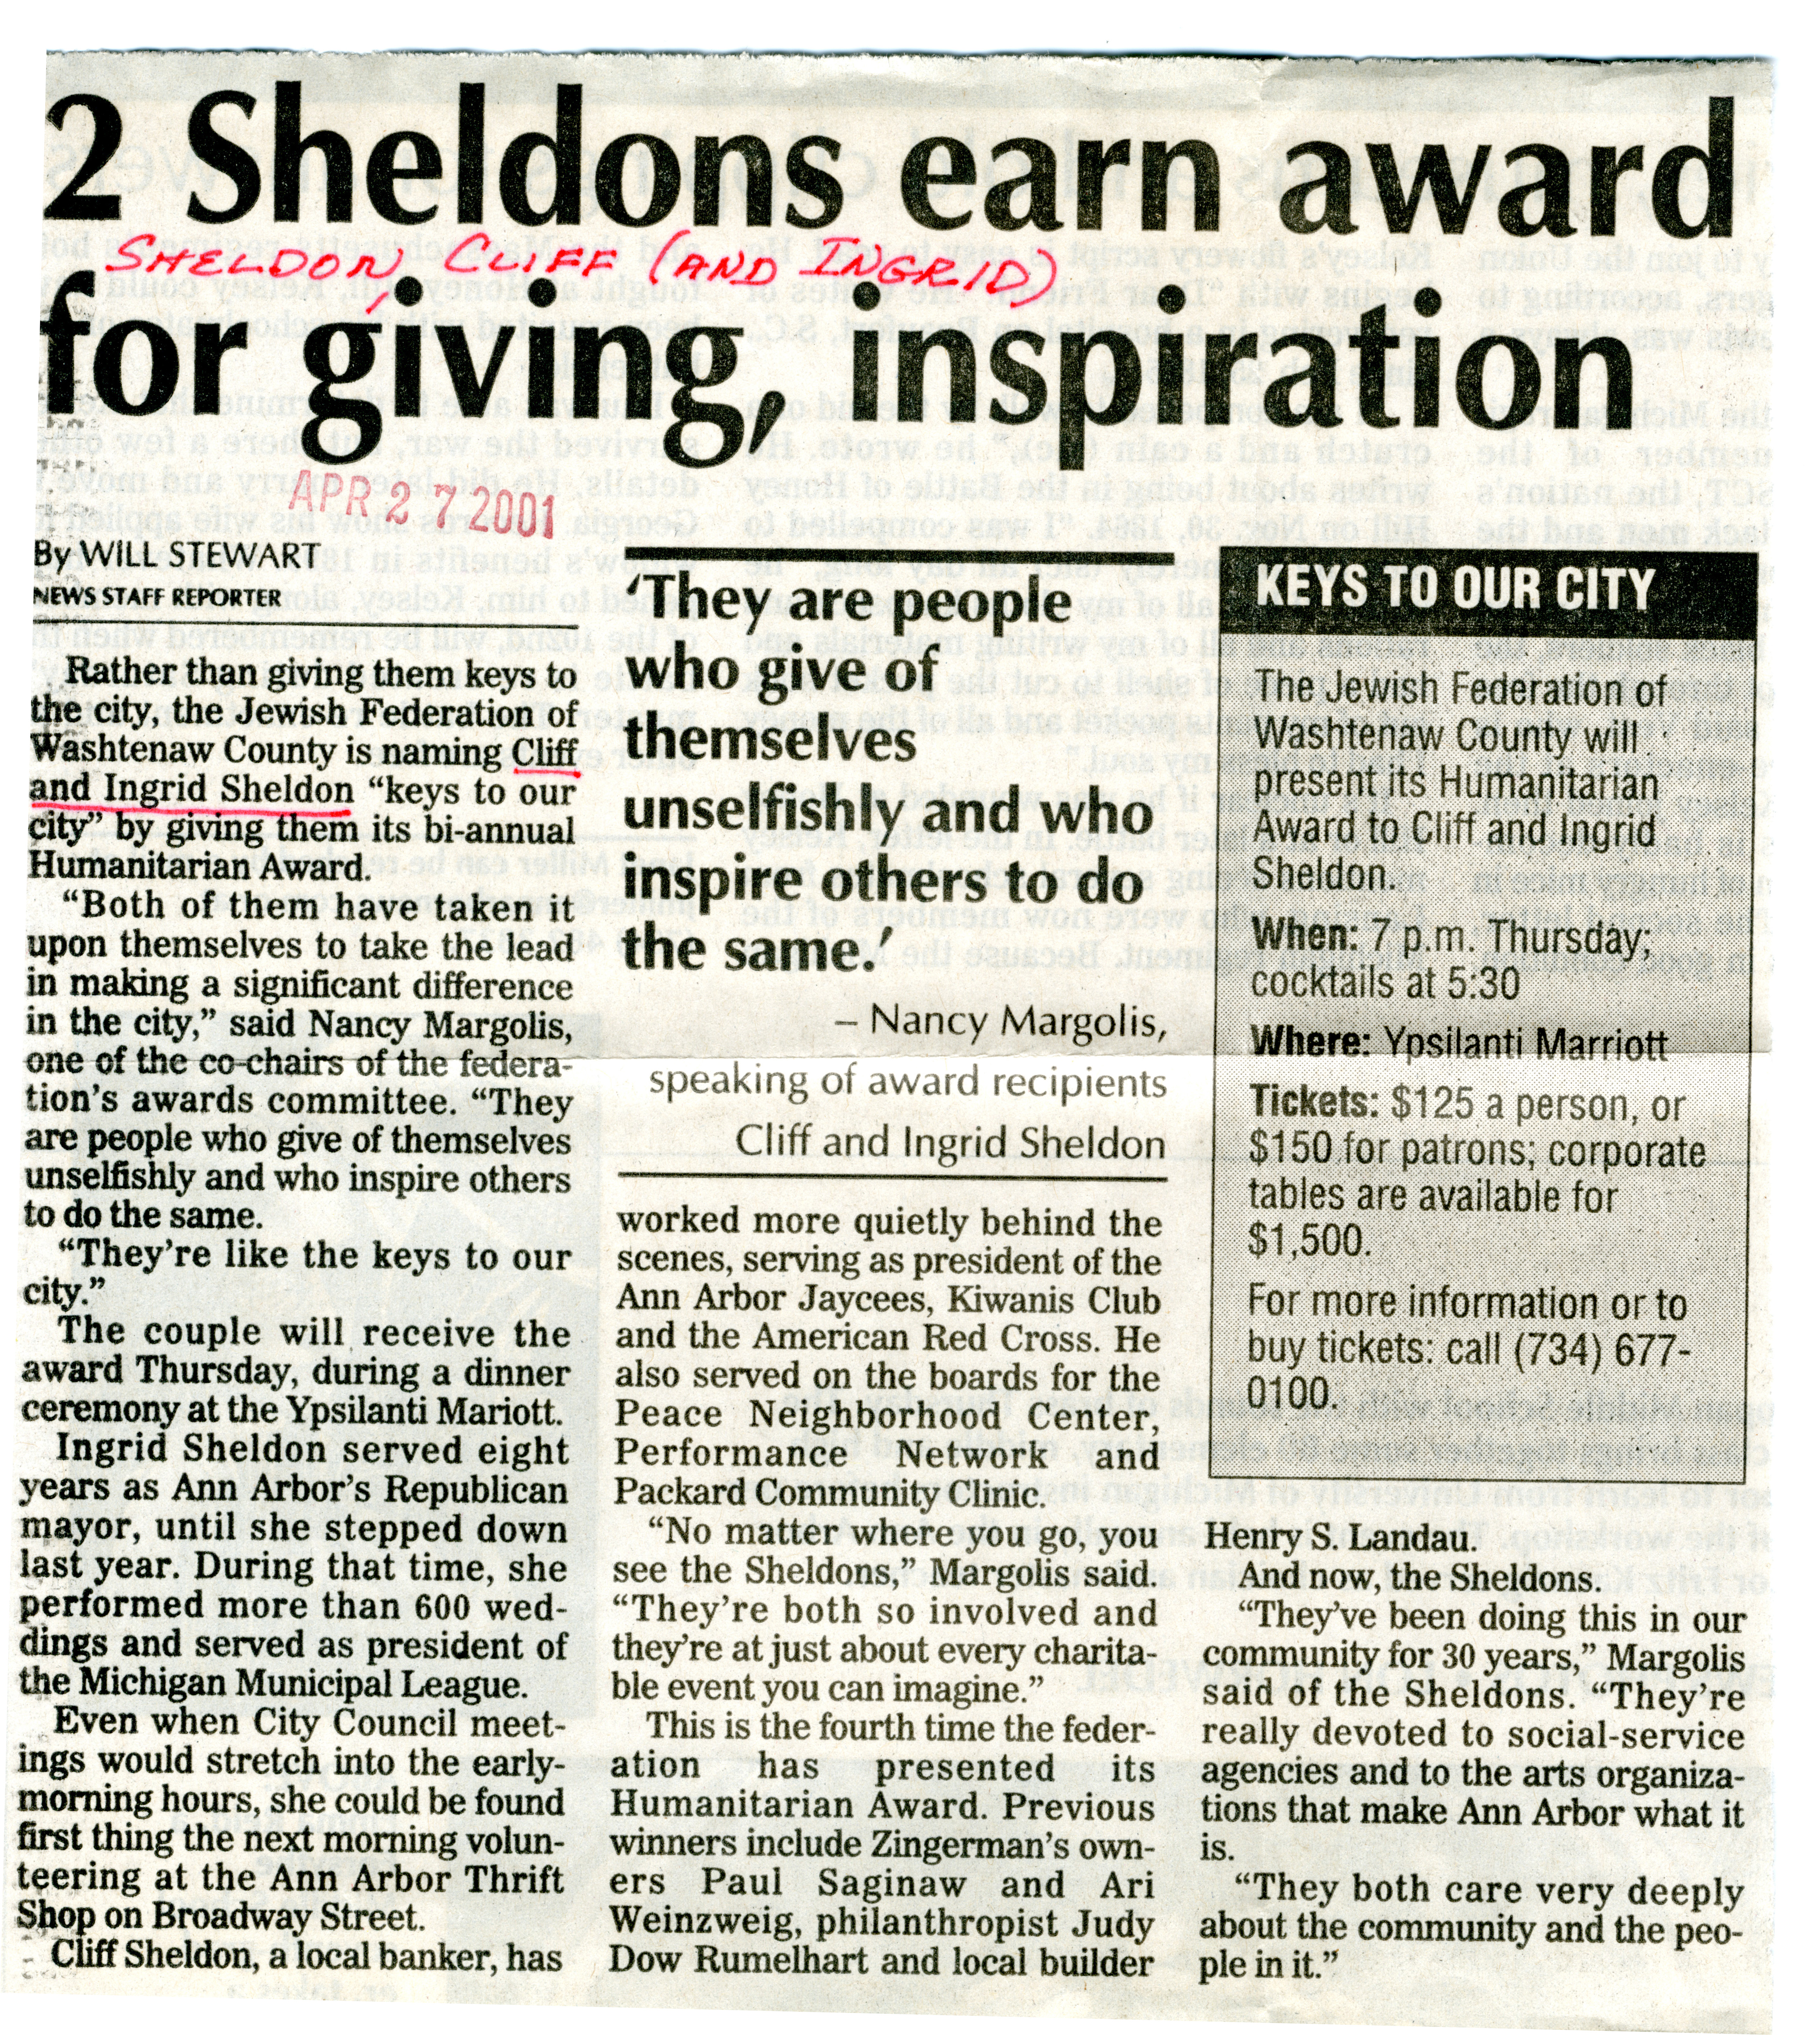 2 Sheldons earn award for giving, inspiration image